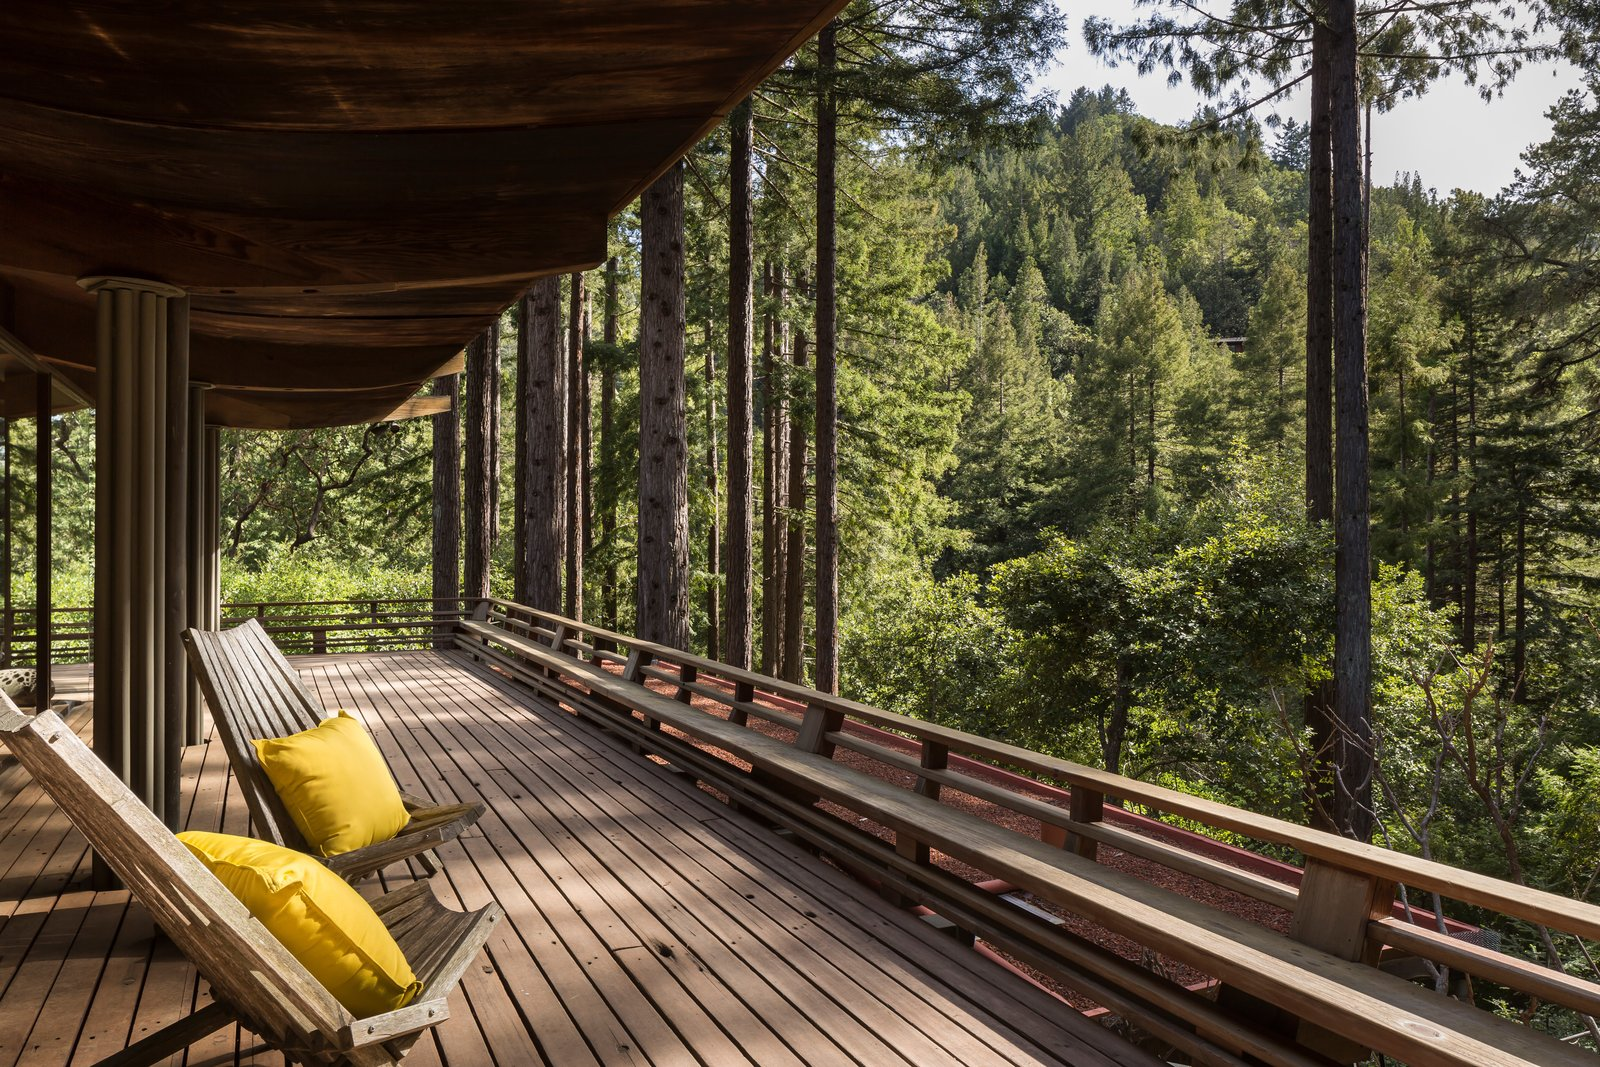 """The house sits on 1.25 acres of land and has a deck that connects the interiors with the outdoors throughout the property. Little points out, """"Some of the old-growth redwood he used has up to 25 growth rings in a single inch!"""" The Midcentury Home That Daniel Liebermann Built For His Parents Asks $2.8 Million - Photo 17 of 17"""